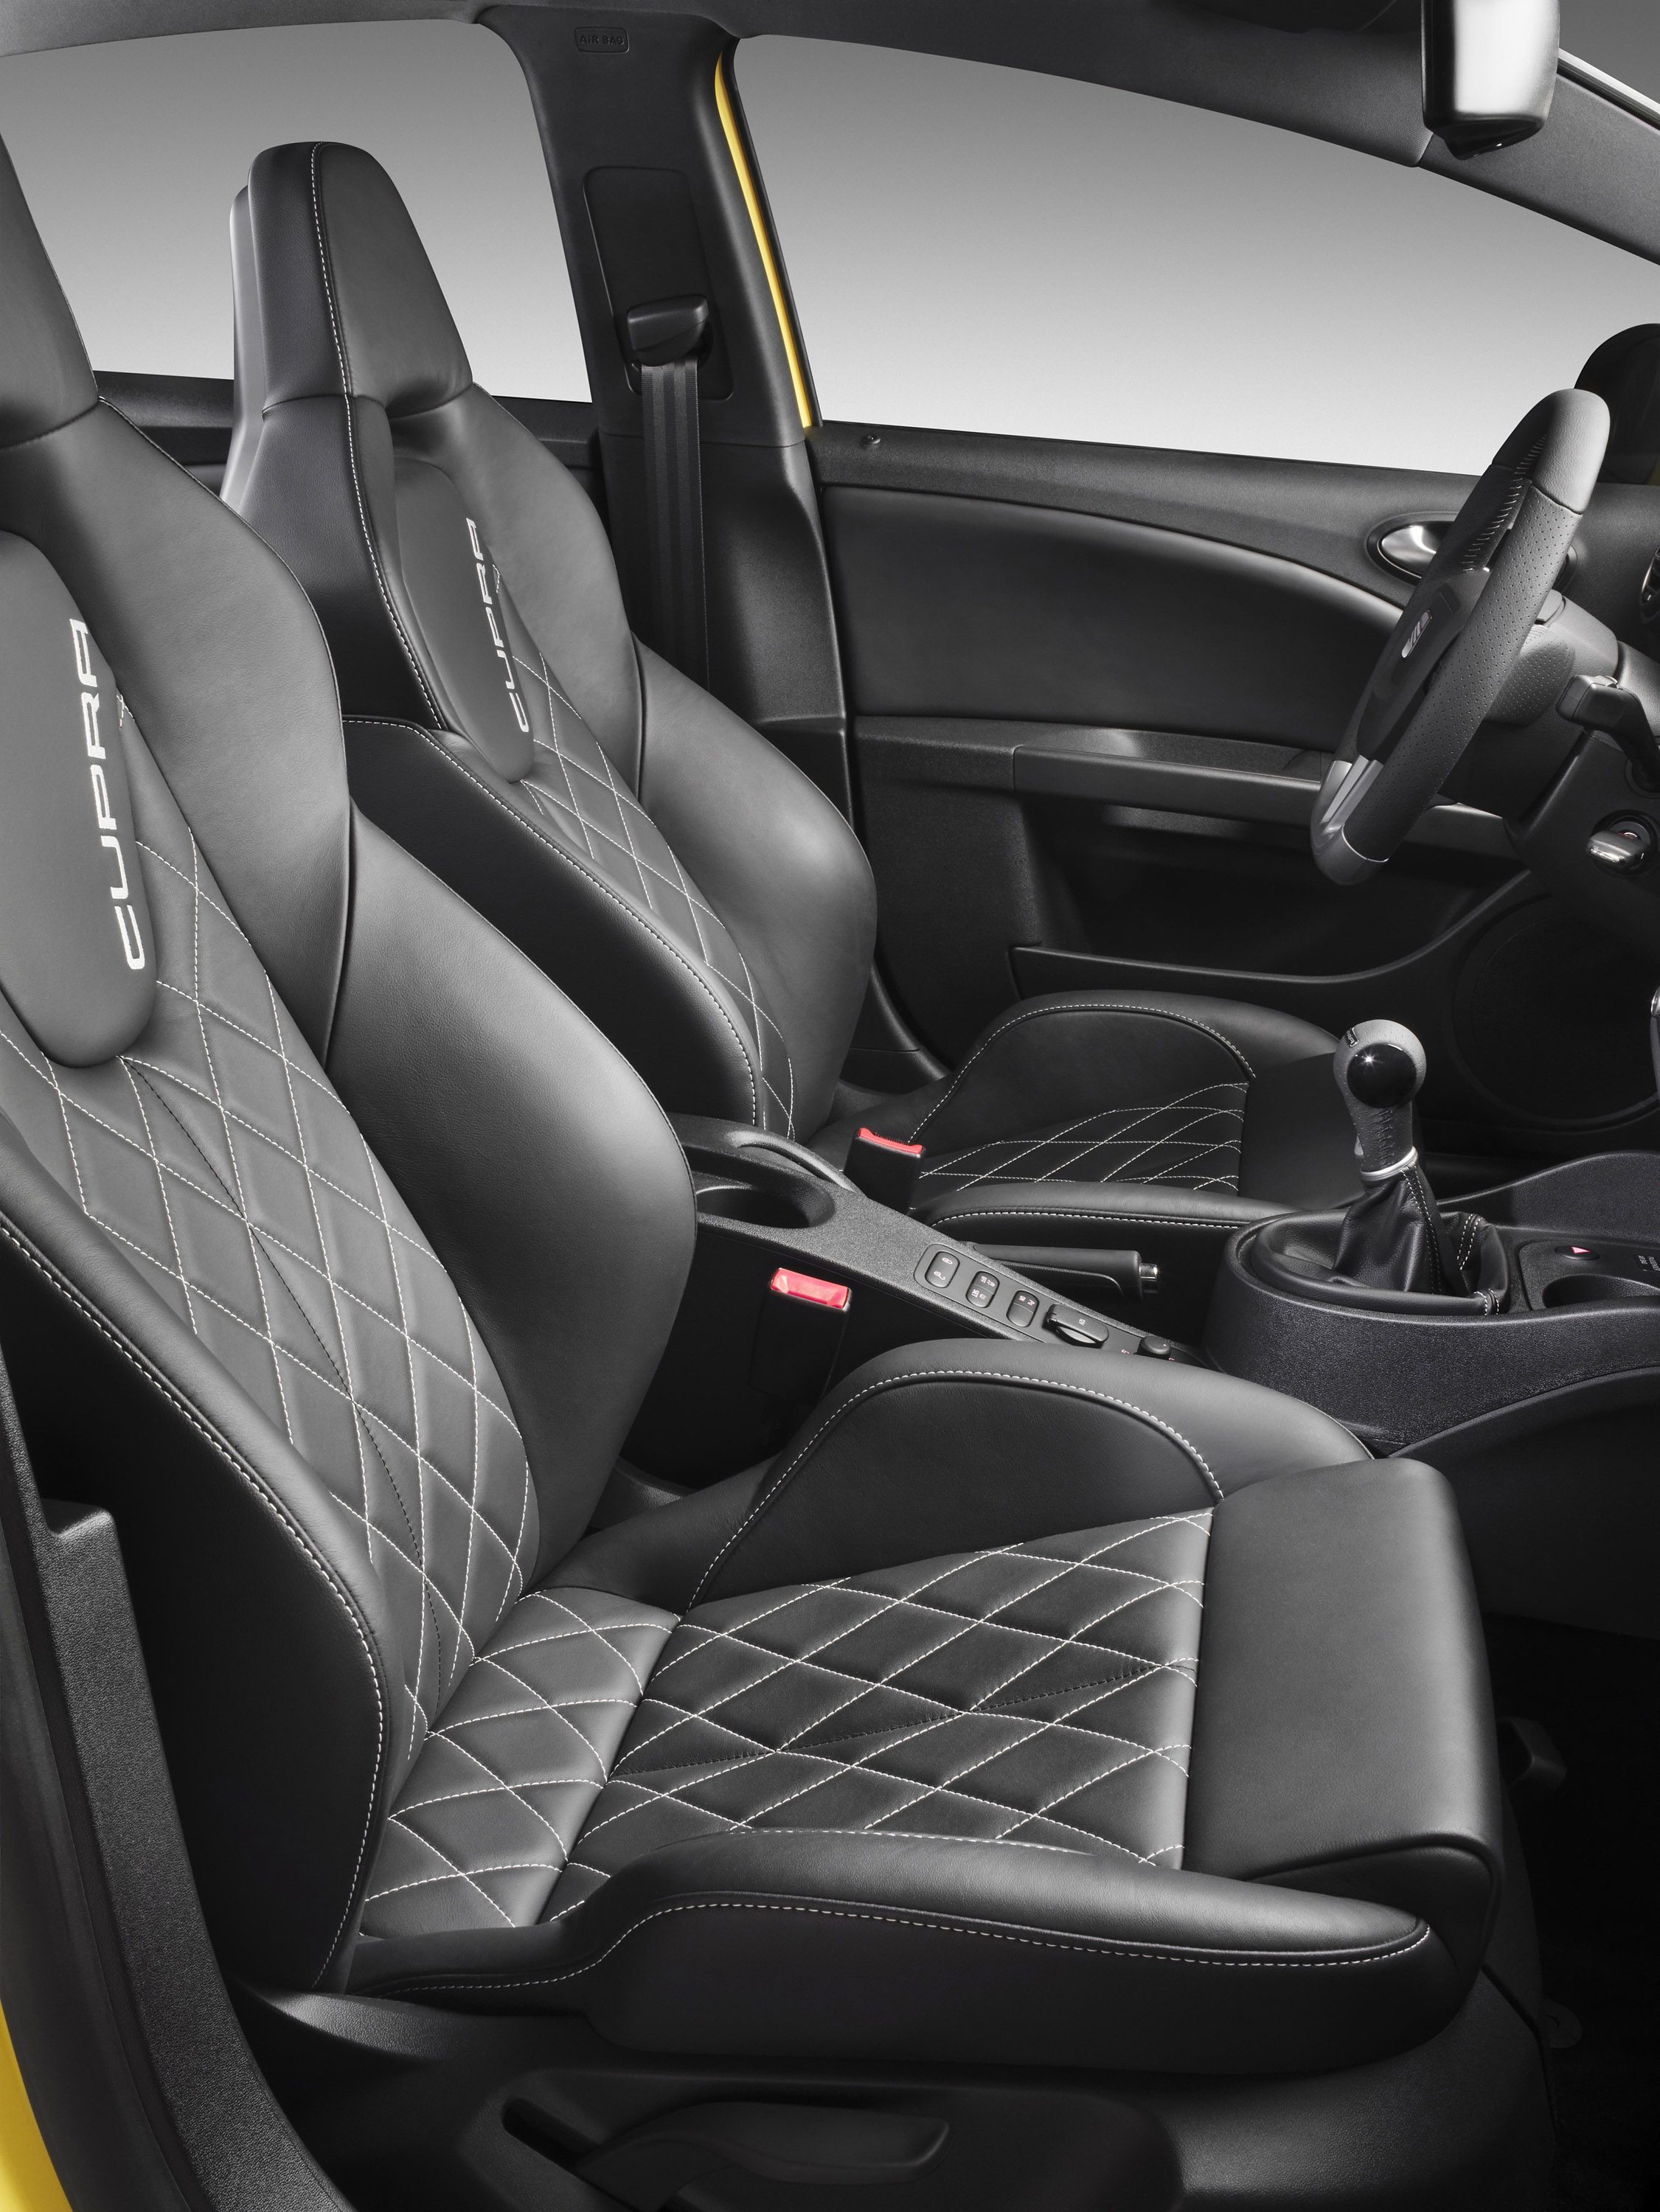 Ibiza FR and the Leon CUPRA Boost Seat\'s Sporty Range